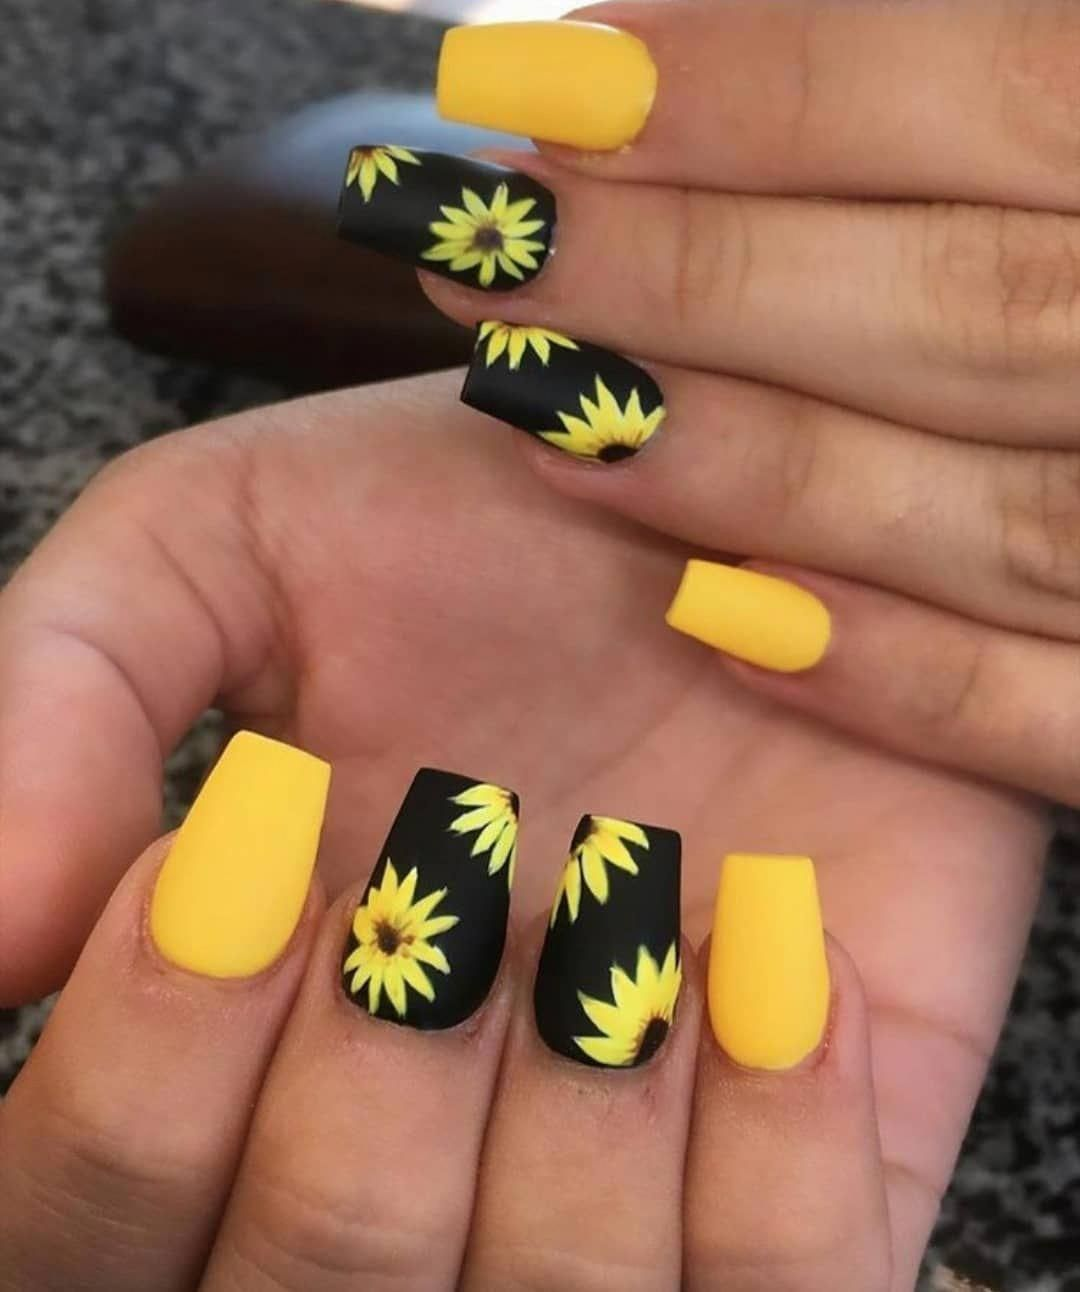 50 Amazing Sunflower Nail Designs For Summer Yellownails Short Acrylic Nails Designs Yellow Nails Design Sunflower Nails